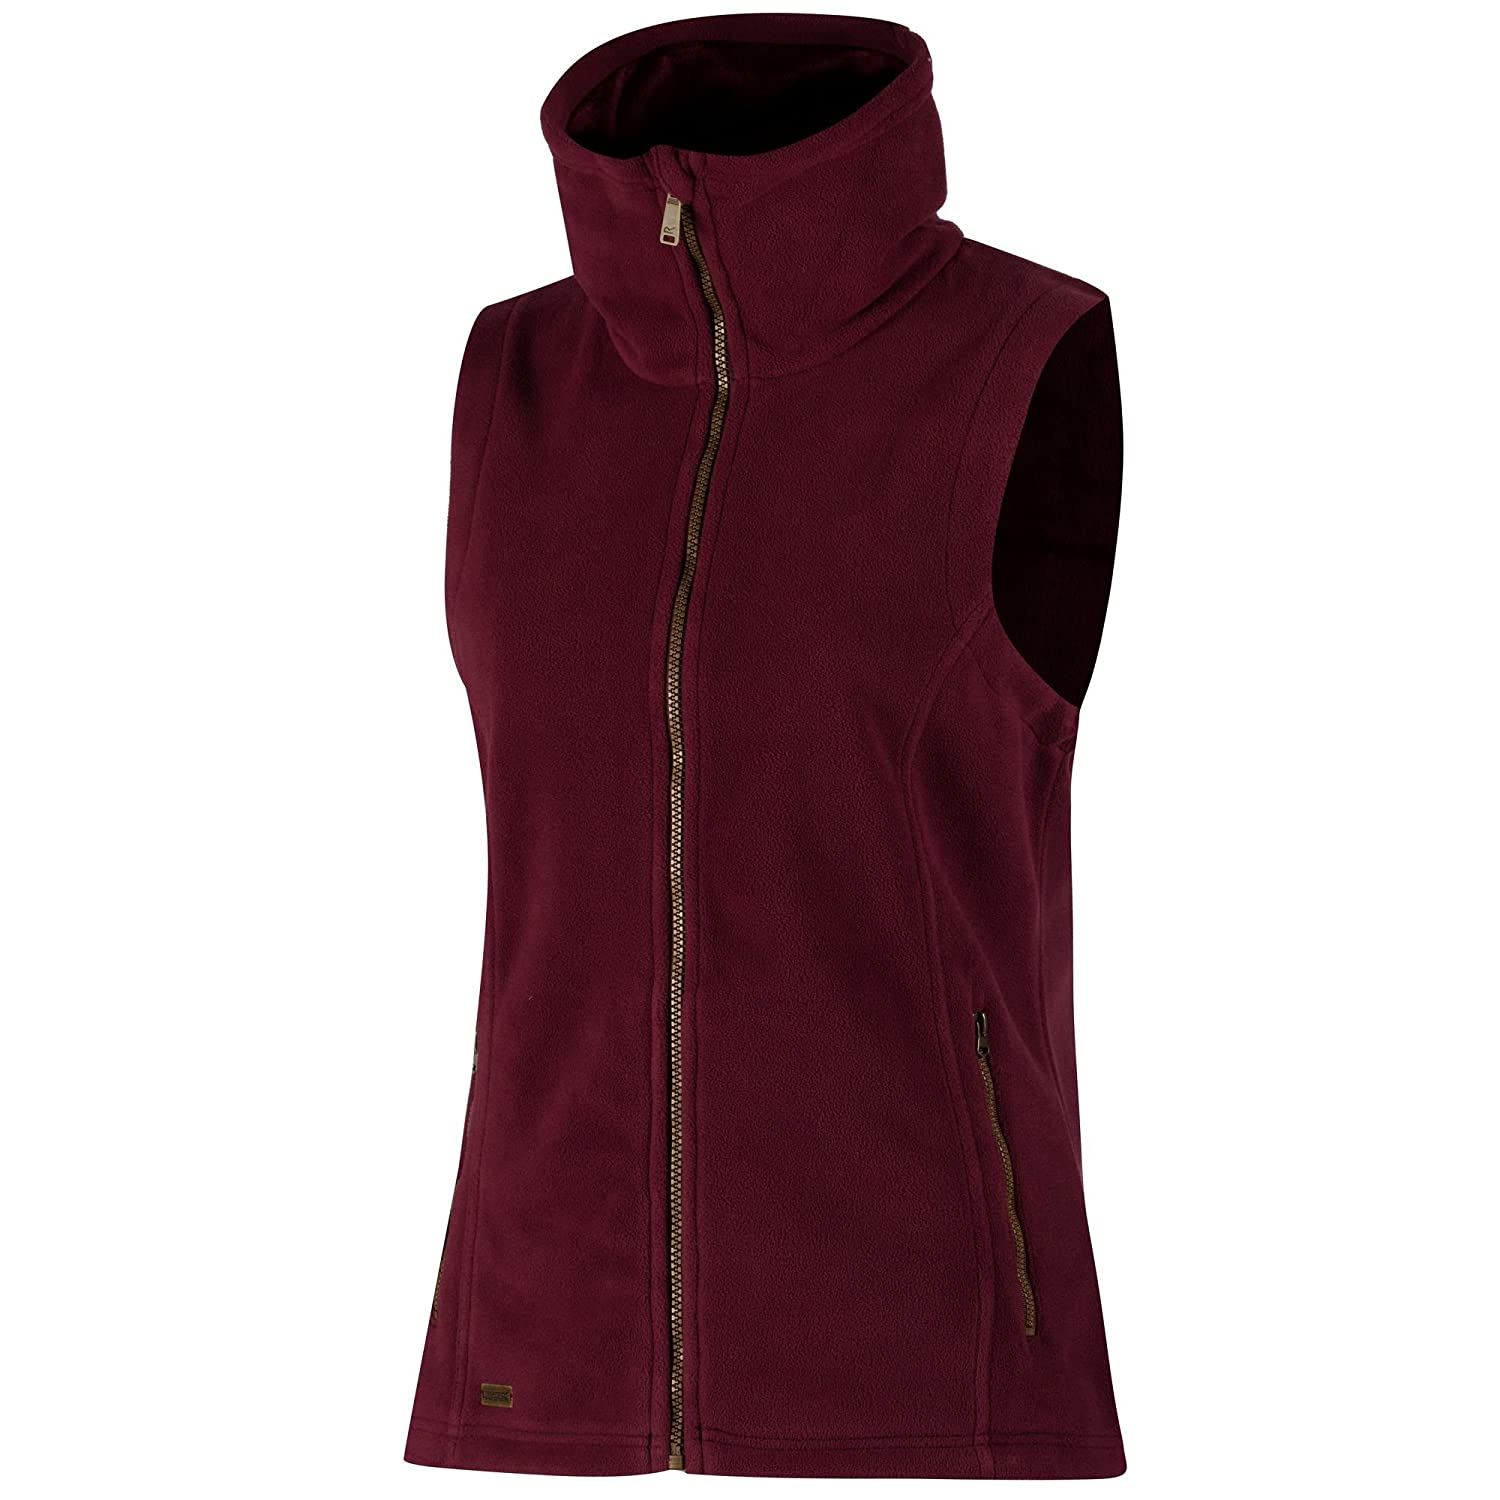 Regatta Womens/Ladies Bertina Fleece Gilet